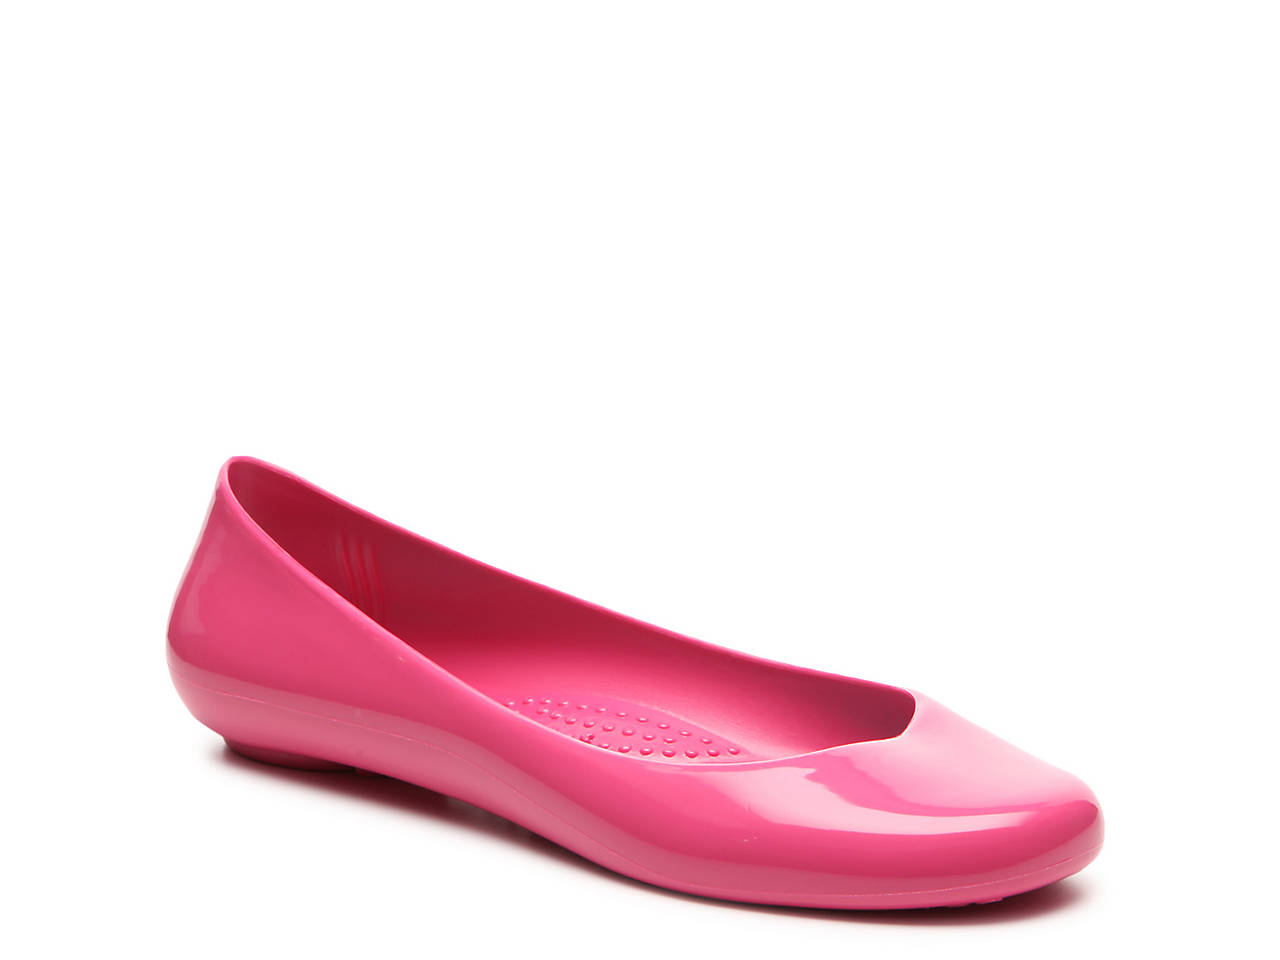 7dde778878337b OKA b. Taylor Jelly Ballet Flat Women s Shoes